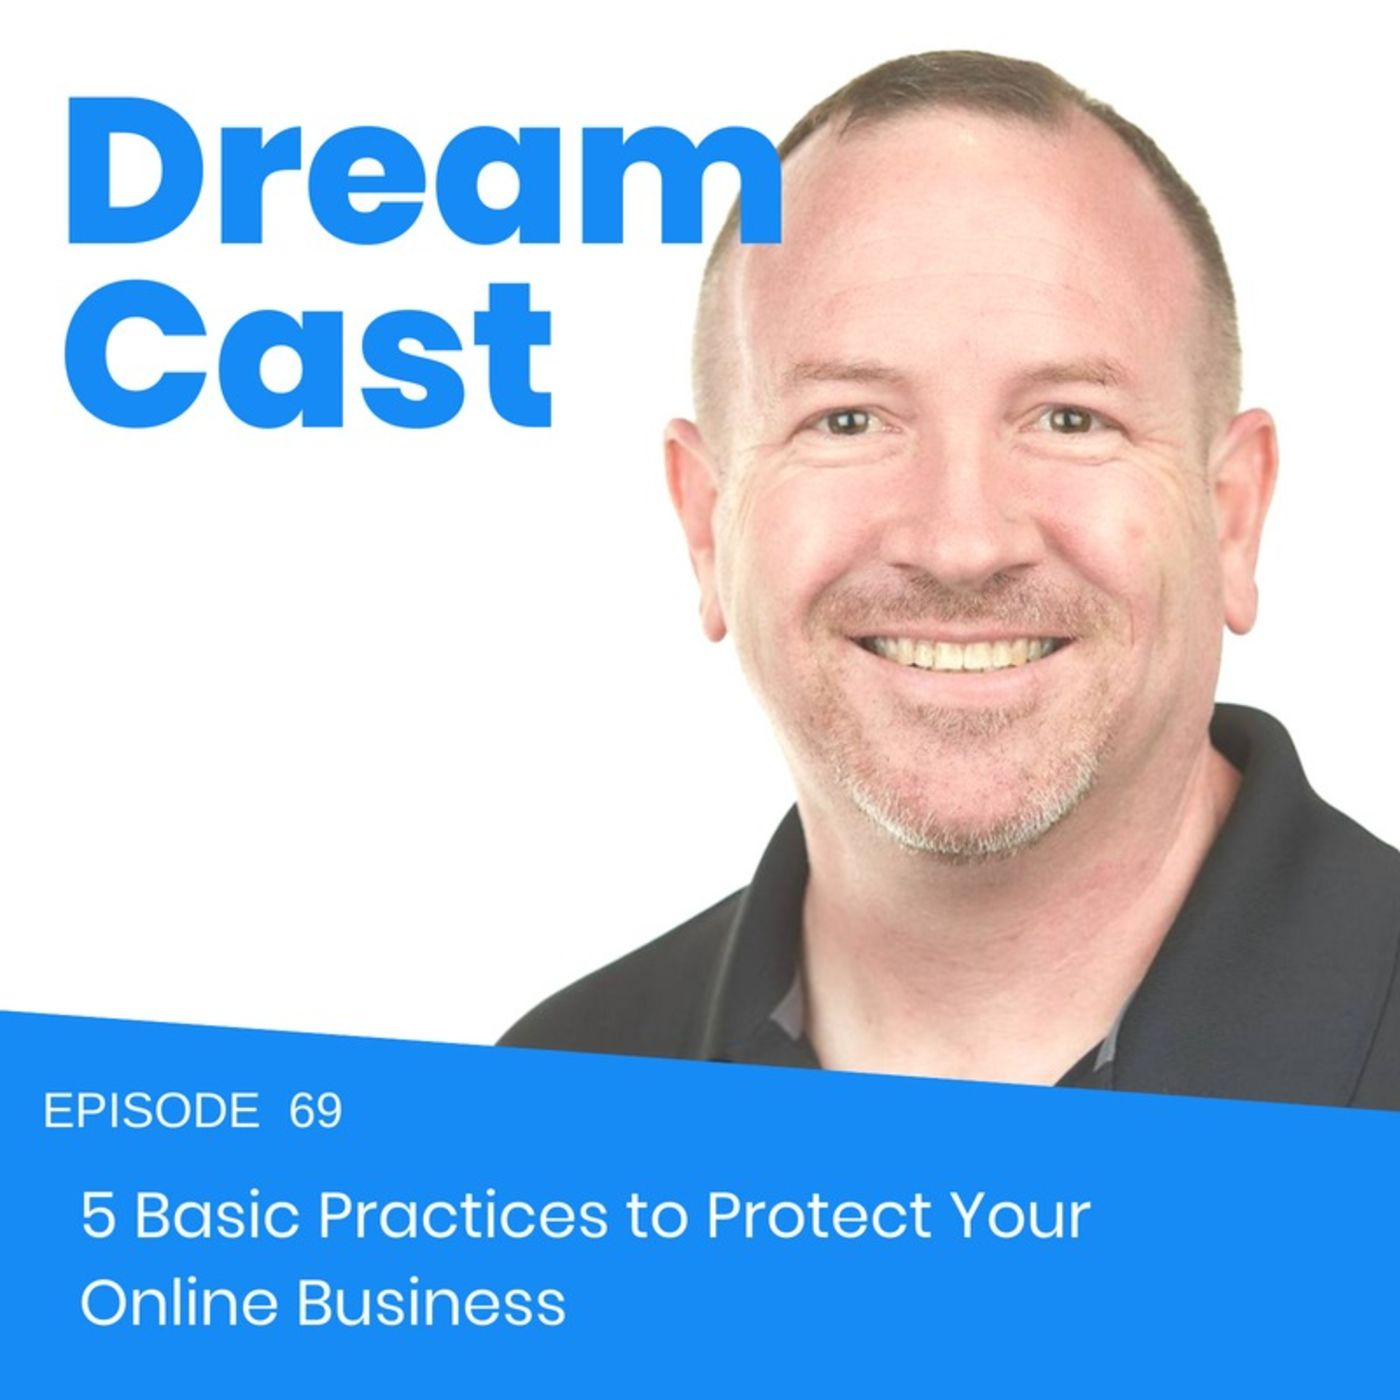 Episode 69 - 5 Basic Practices to Protect Your Online Business